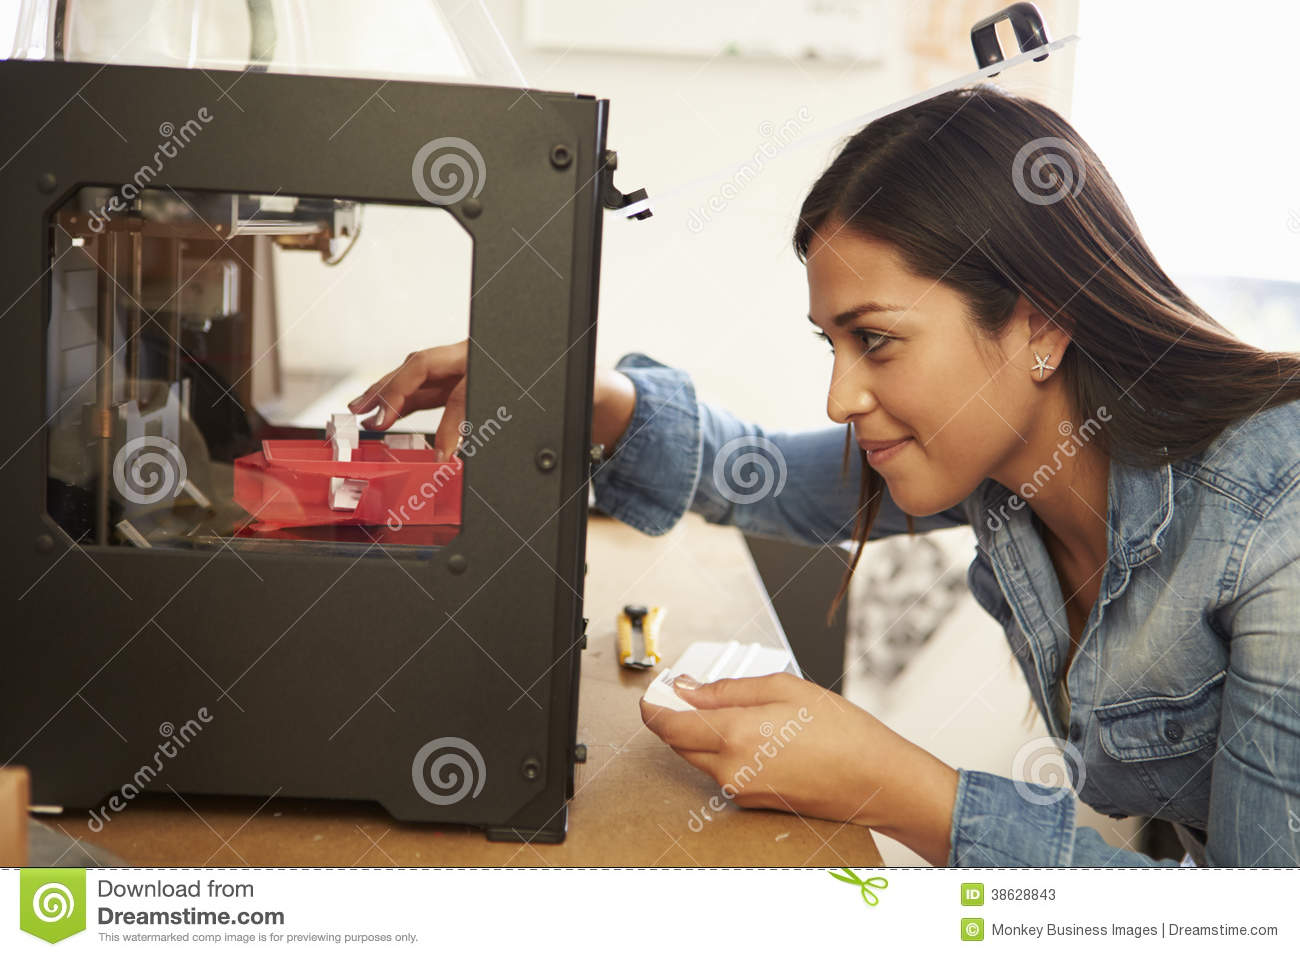 Female architect using 3d printer in office stock photos Making models for 3d printing